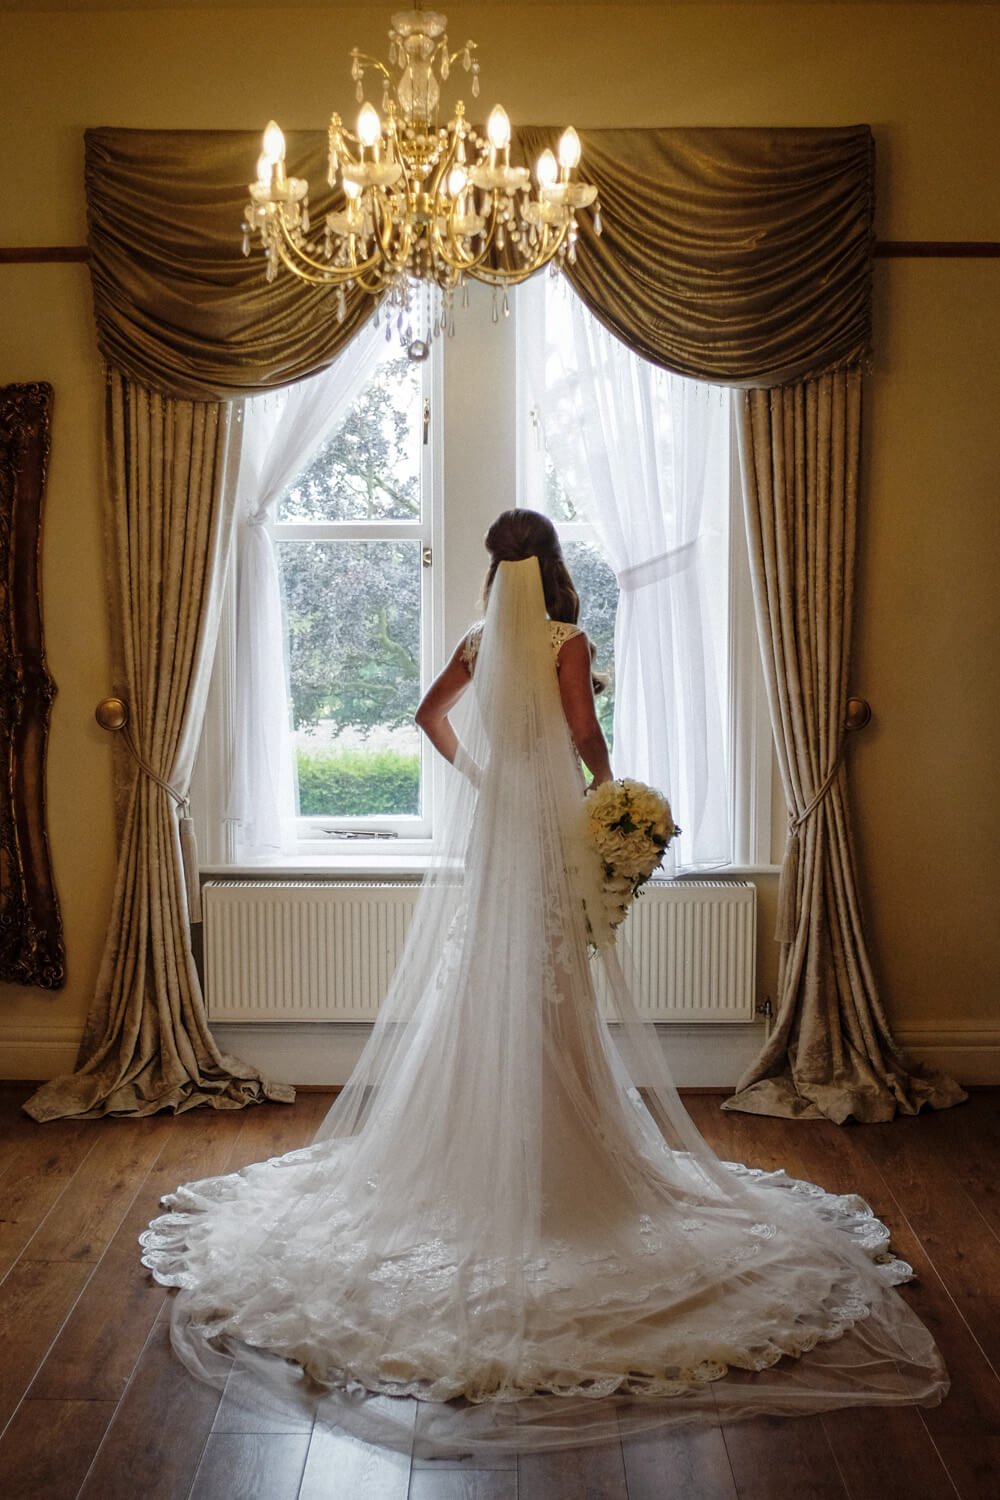 Back of bride standing in bridal suite window